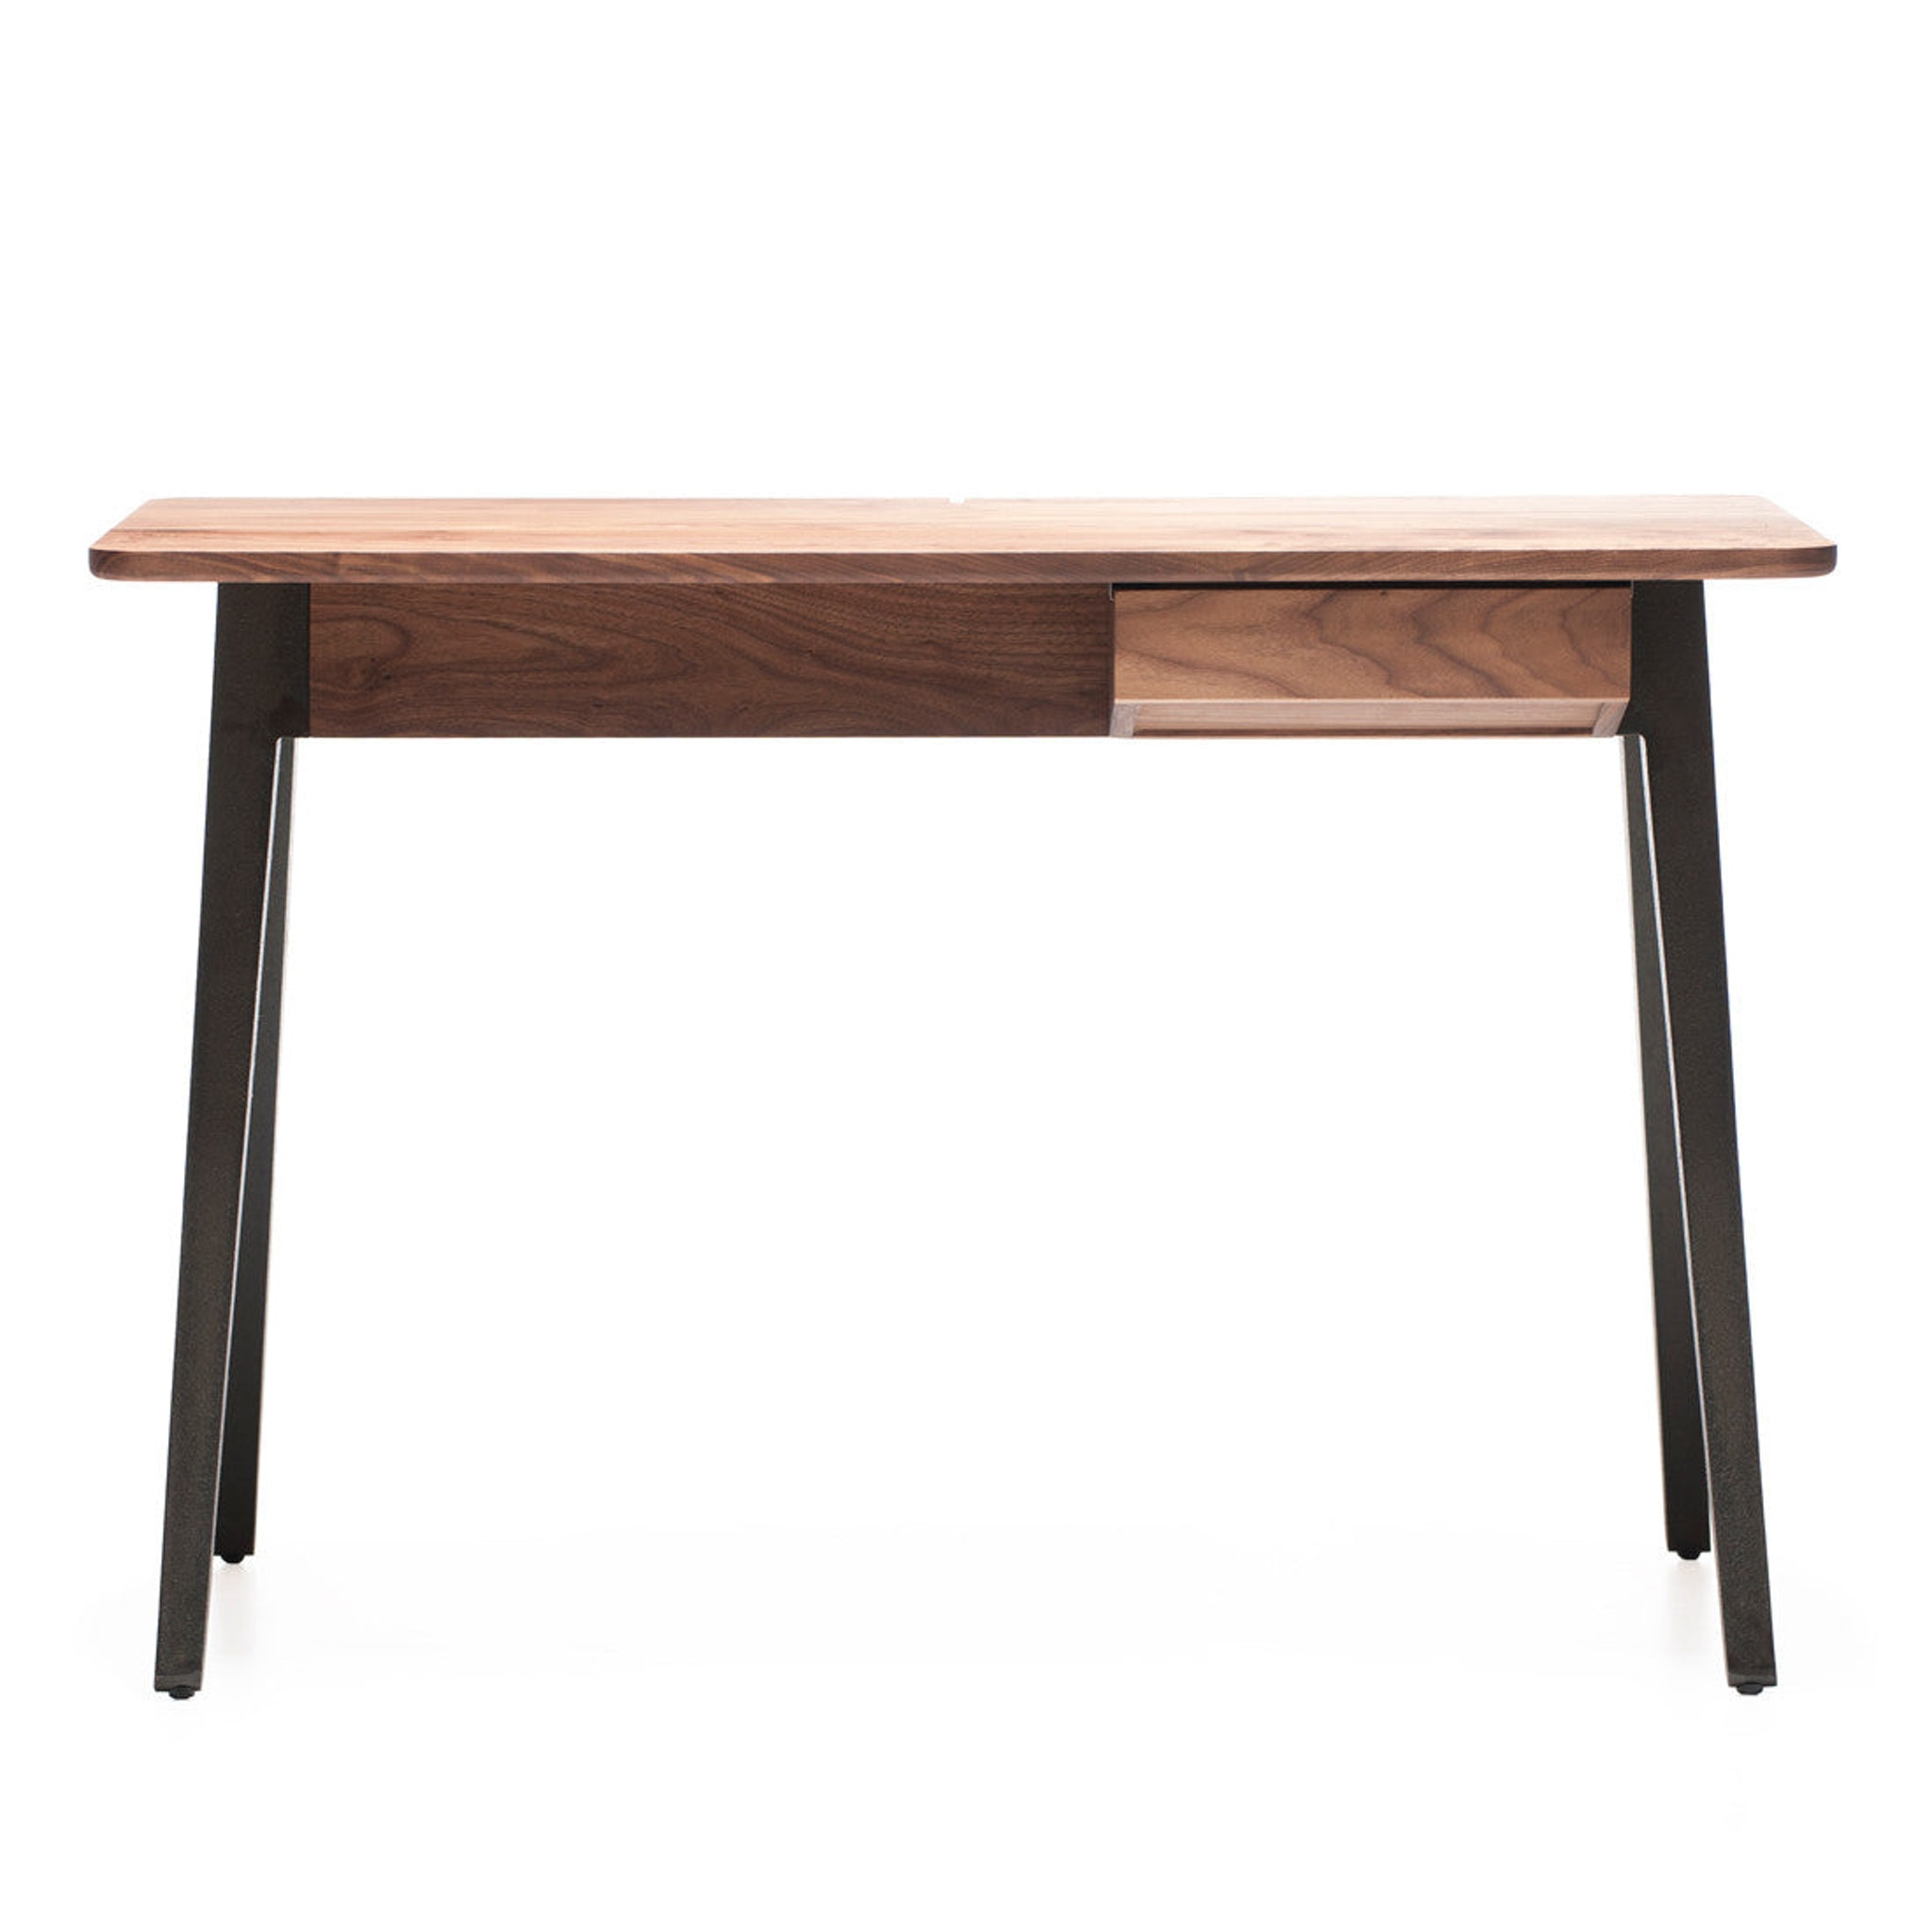 Orson Compact Desk by Matthew Hilton